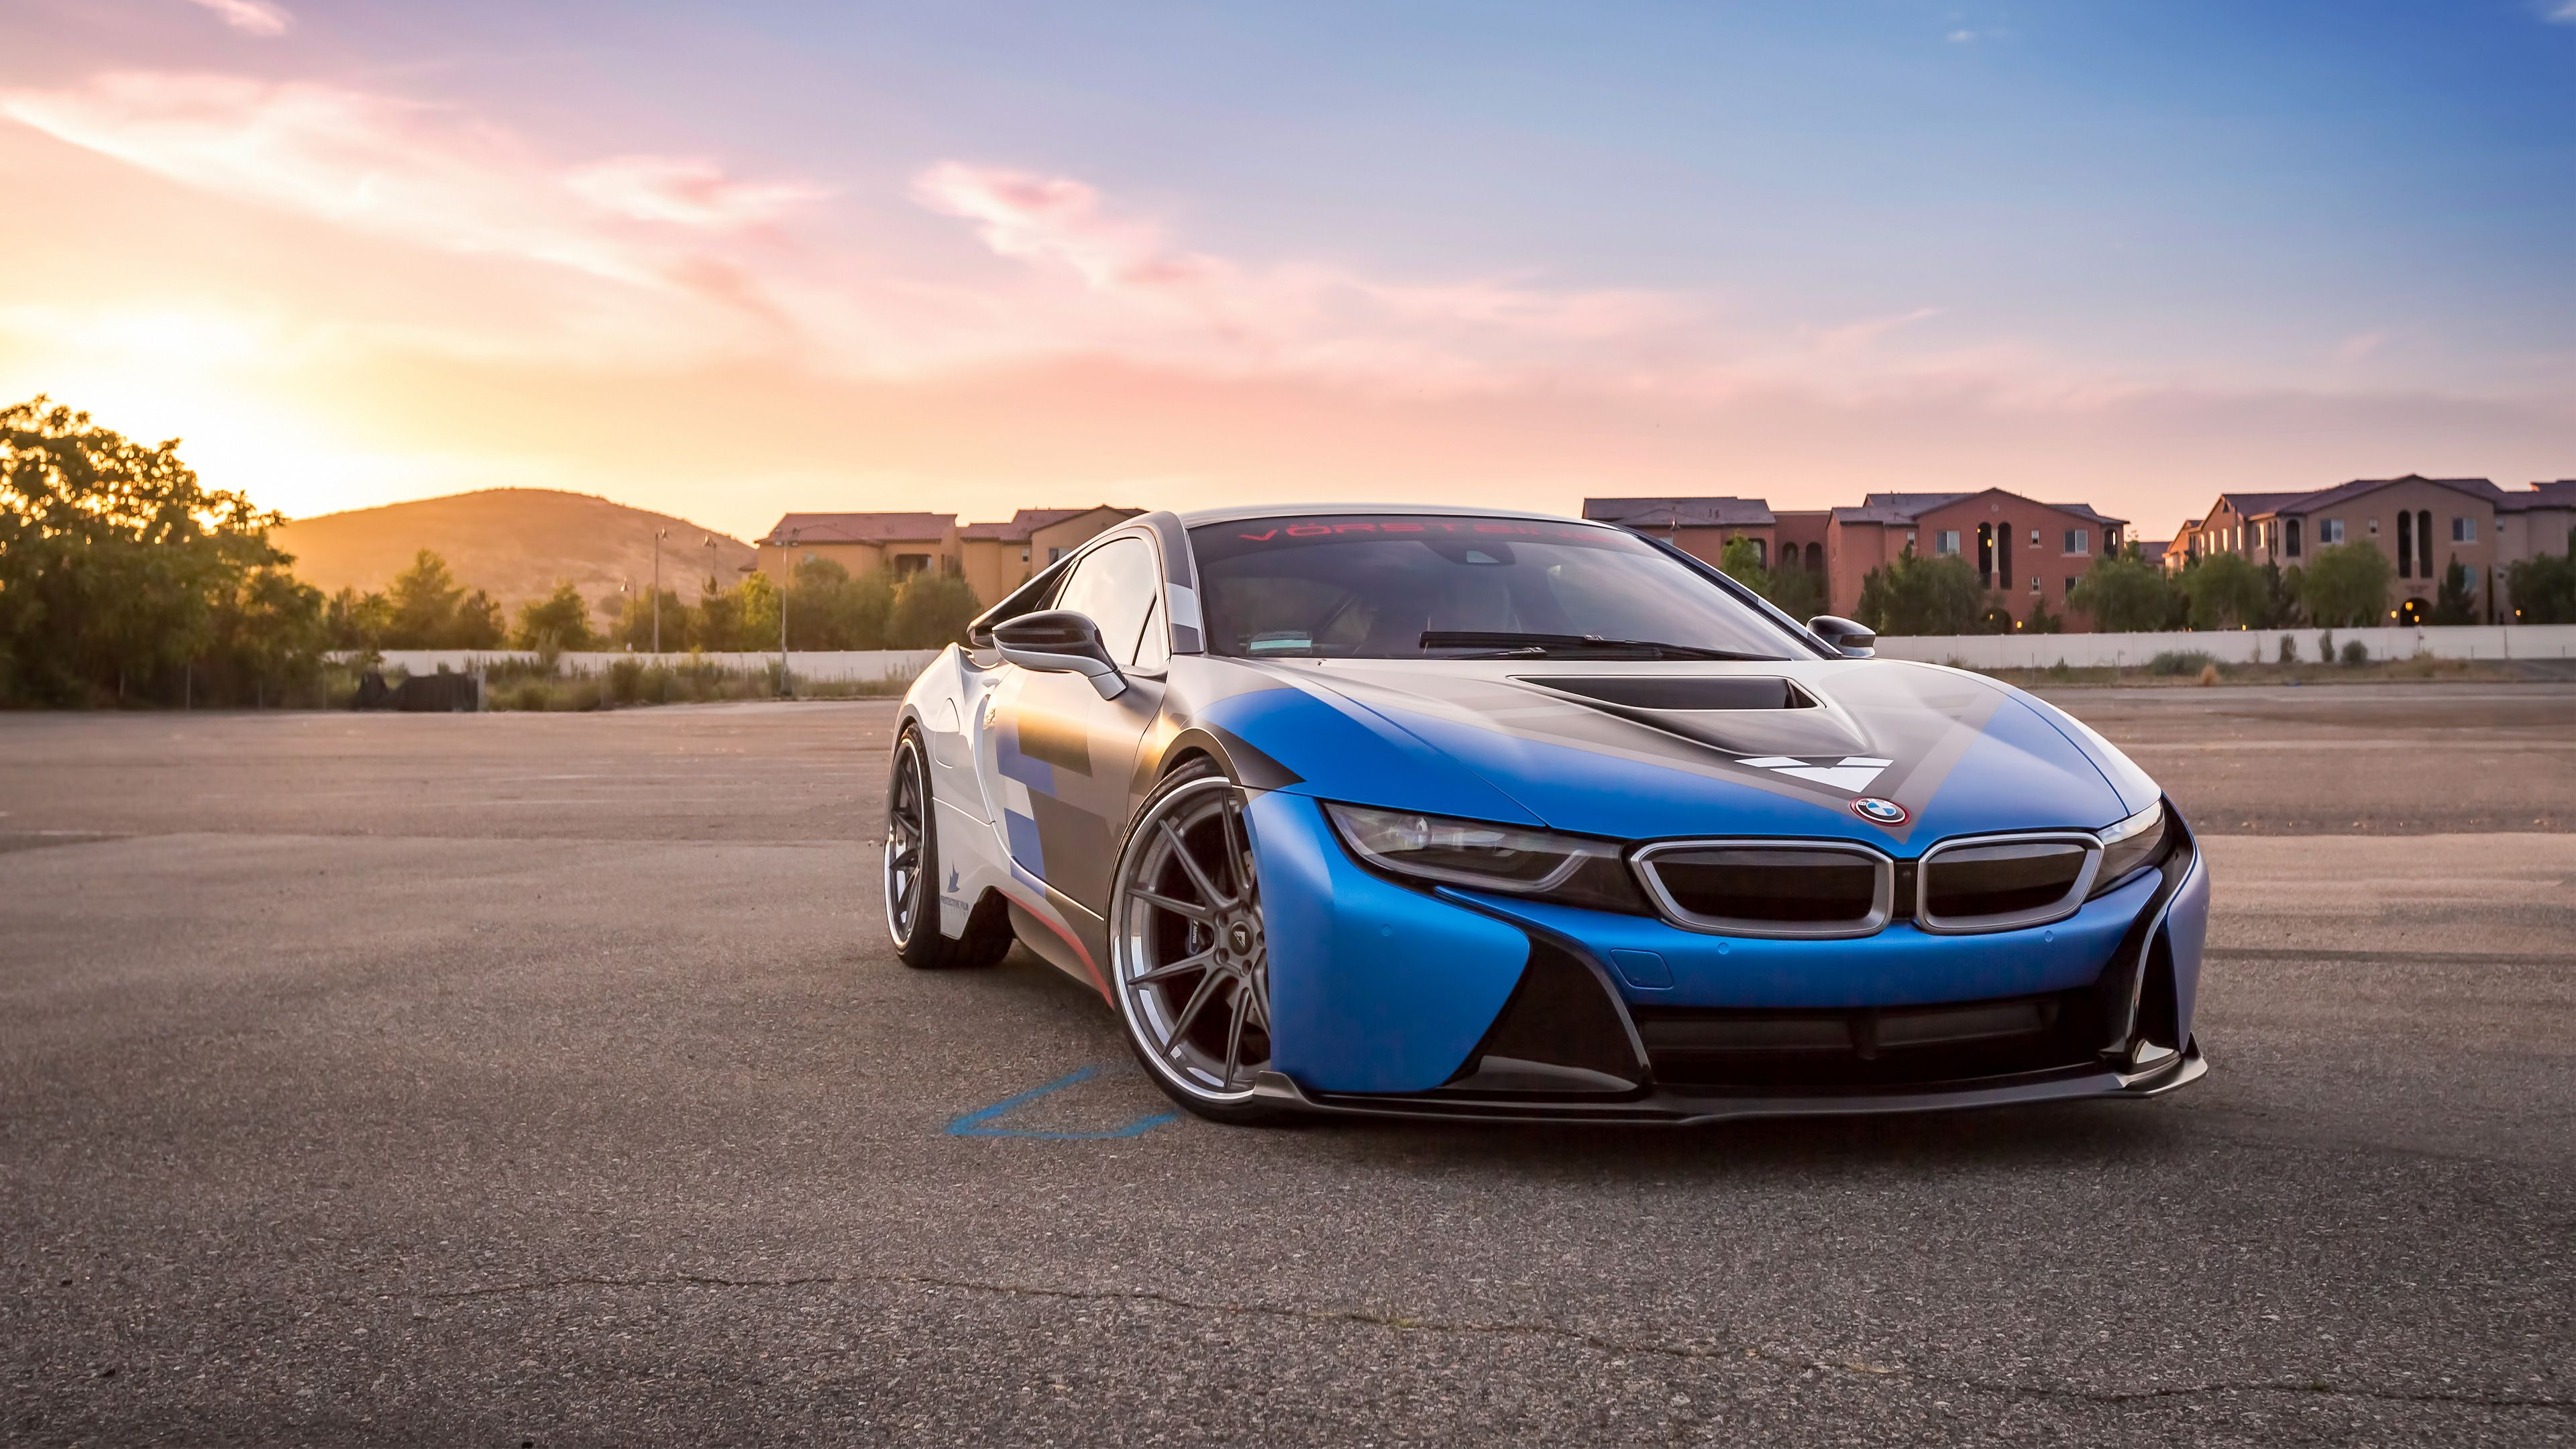 Take a look at these stunning bmw car images and download free bmw hd car wallpapers in high resolution. 4k Bmw Wallpapers Top Free 4k Bmw Backgrounds Wallpaperaccess